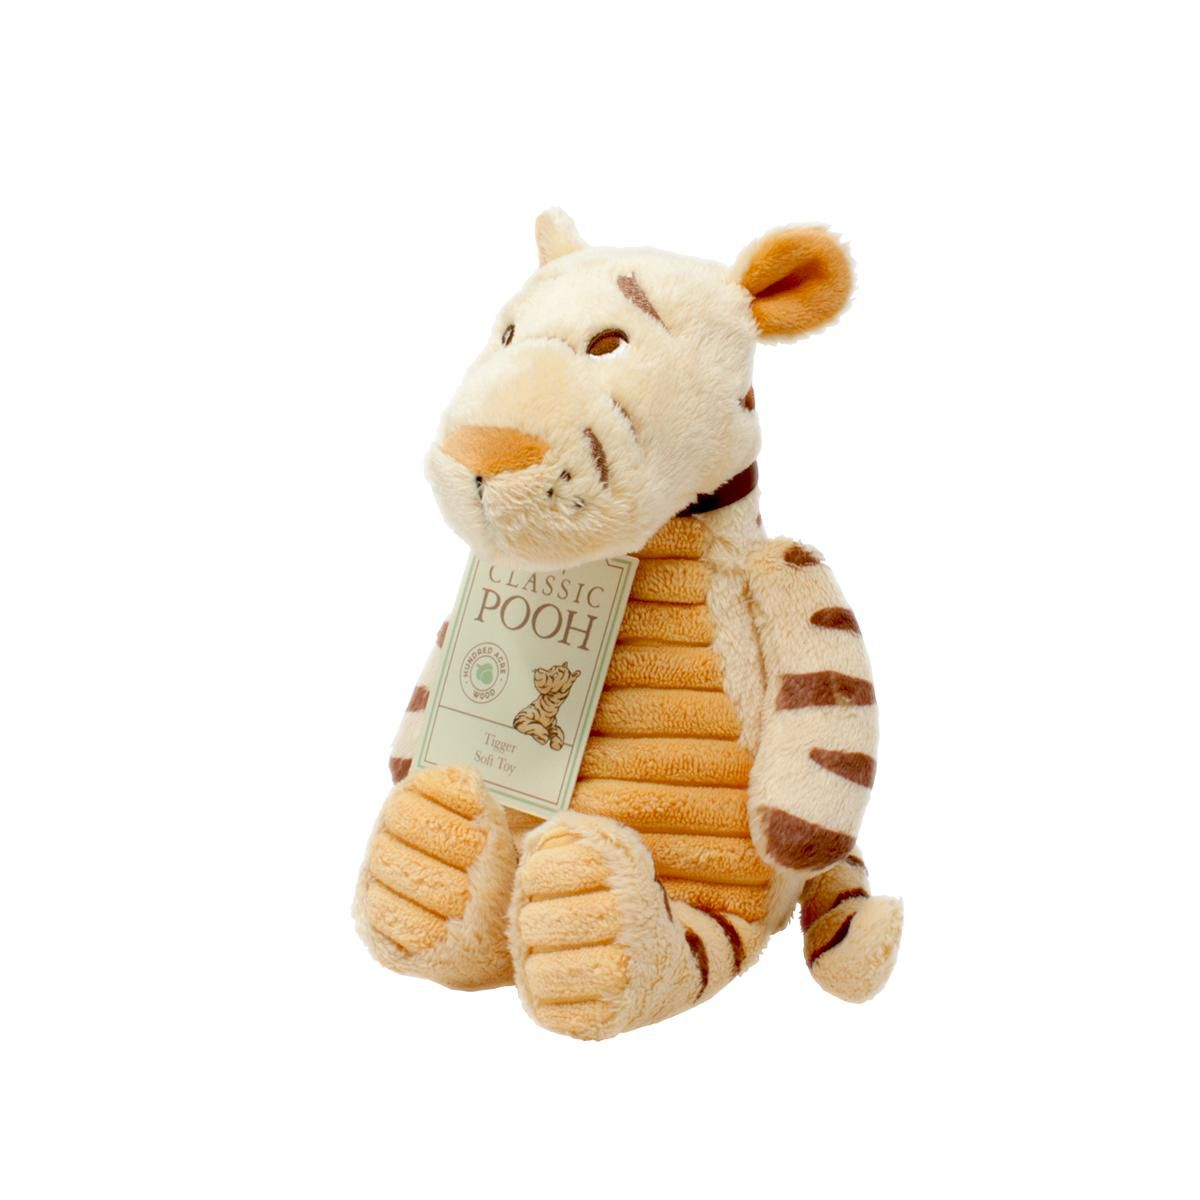 Hundred Acre Wood Tigger Soft Toy by Rainbow Designs DN1471